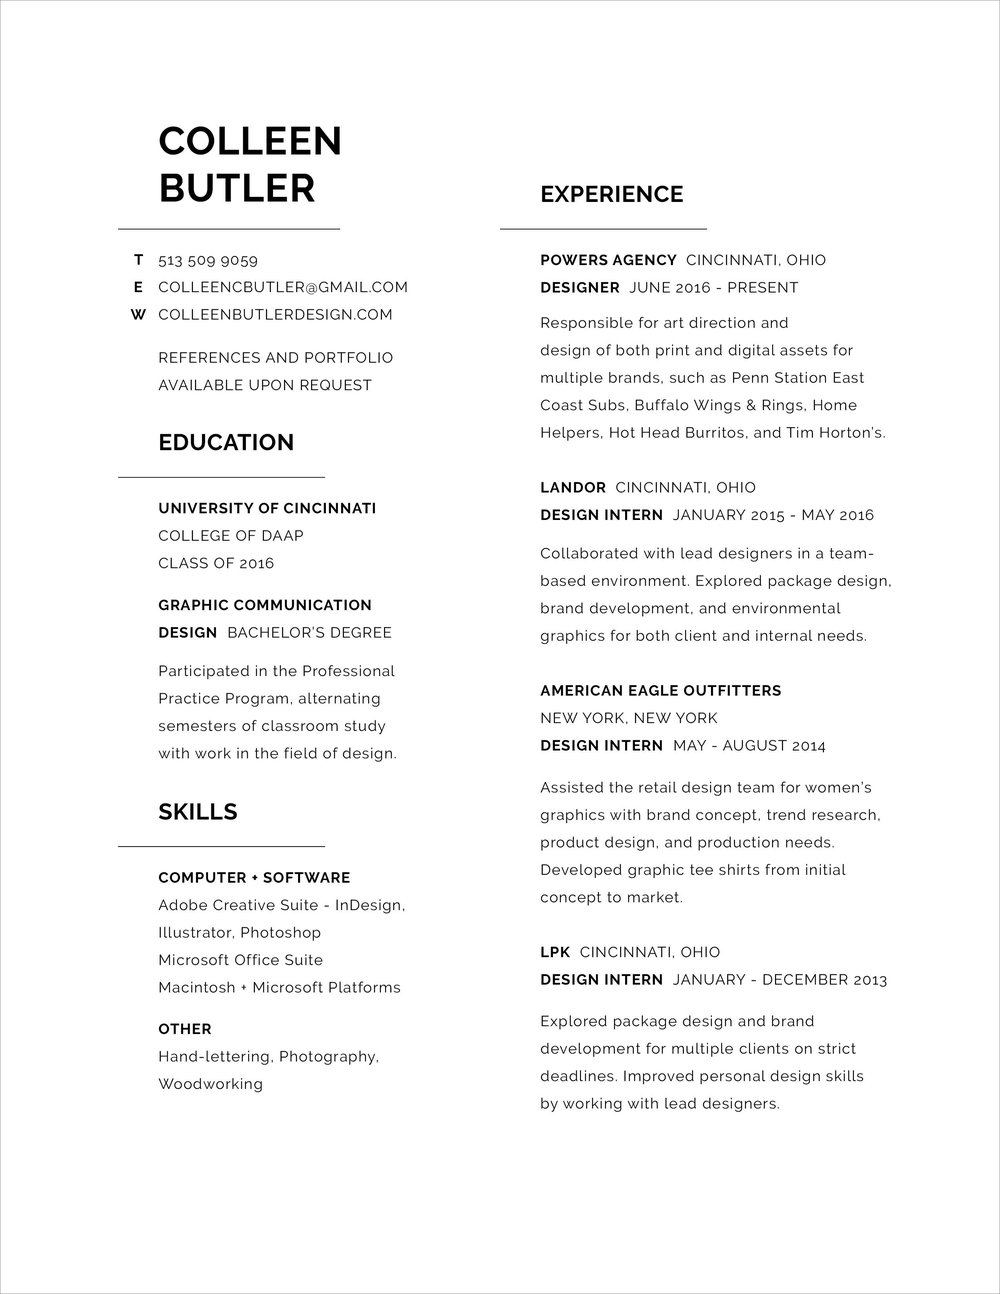 Resume_ColleenButler